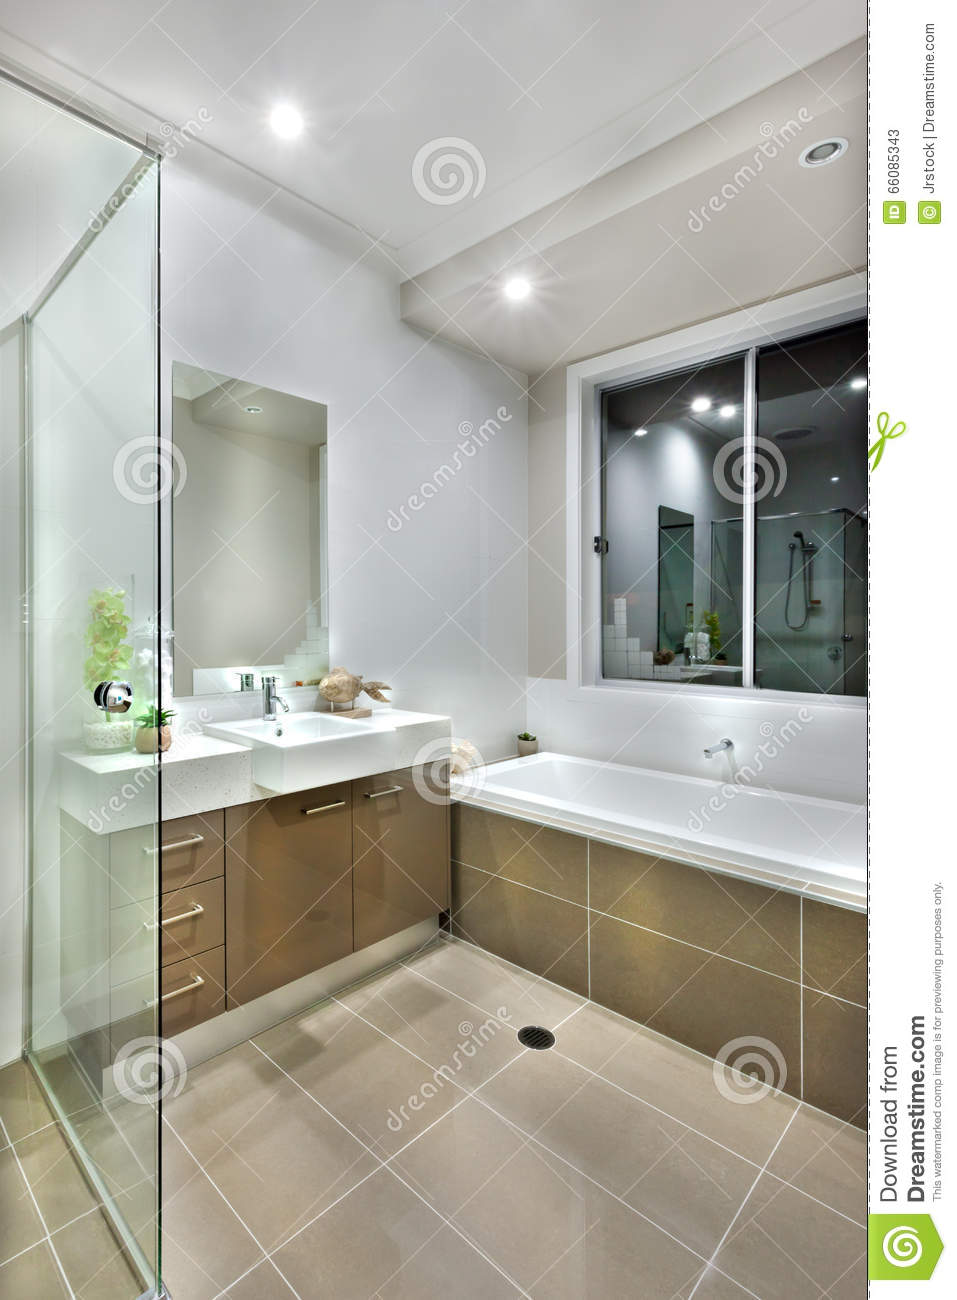 Modern Bathroom With Dark Color Floor Tiles With Lights On Editorial Stock Ph -> Banheiro Moderno Retro